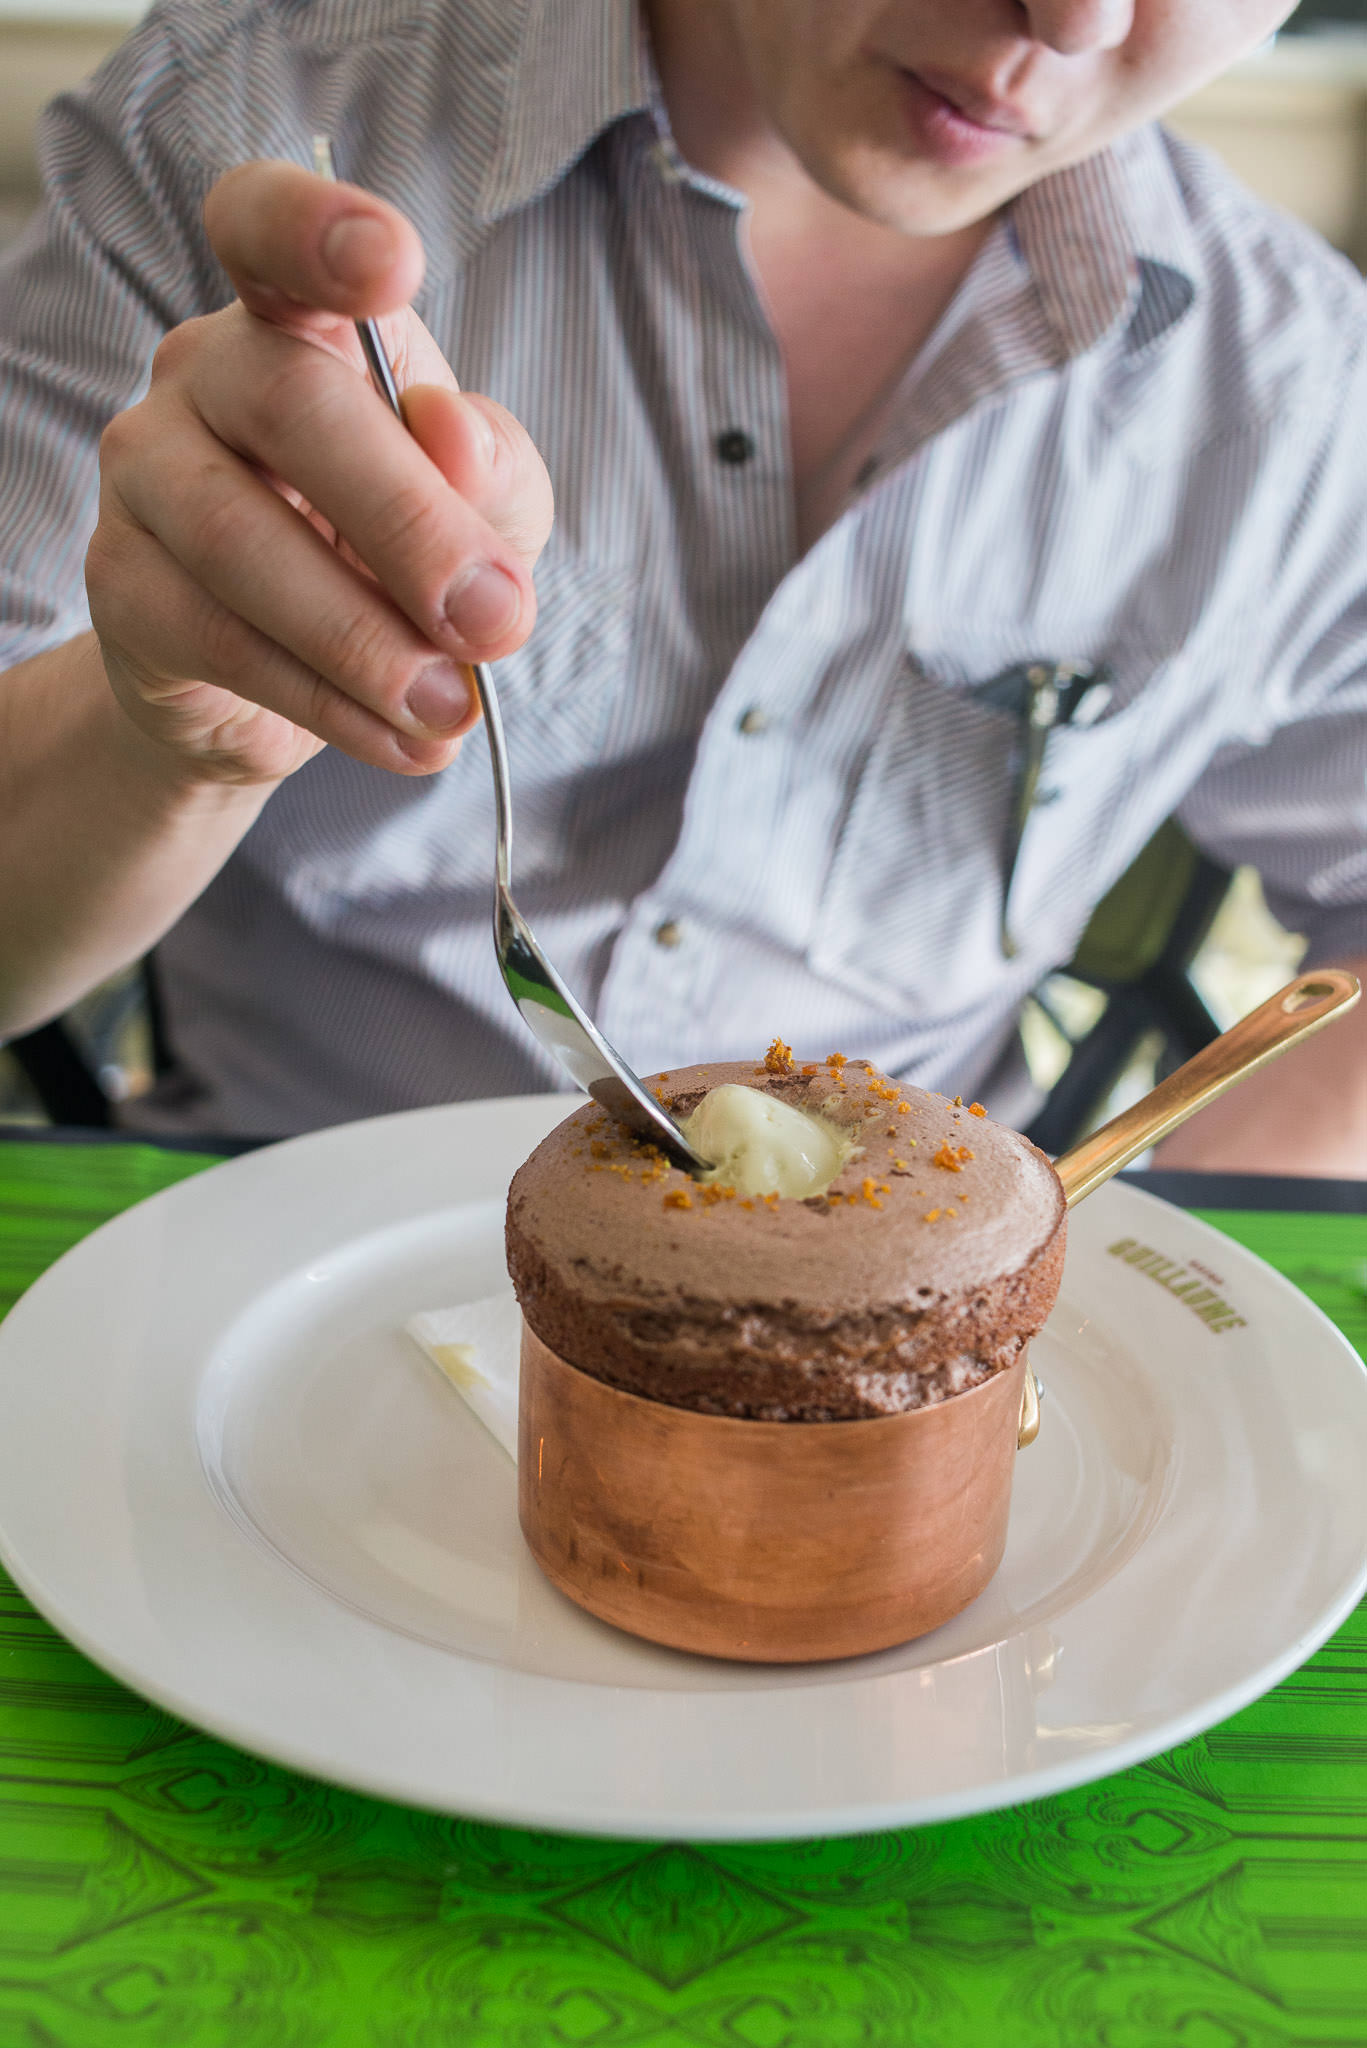 Chocolate soufflé with pistachio ice cream (AU$22)